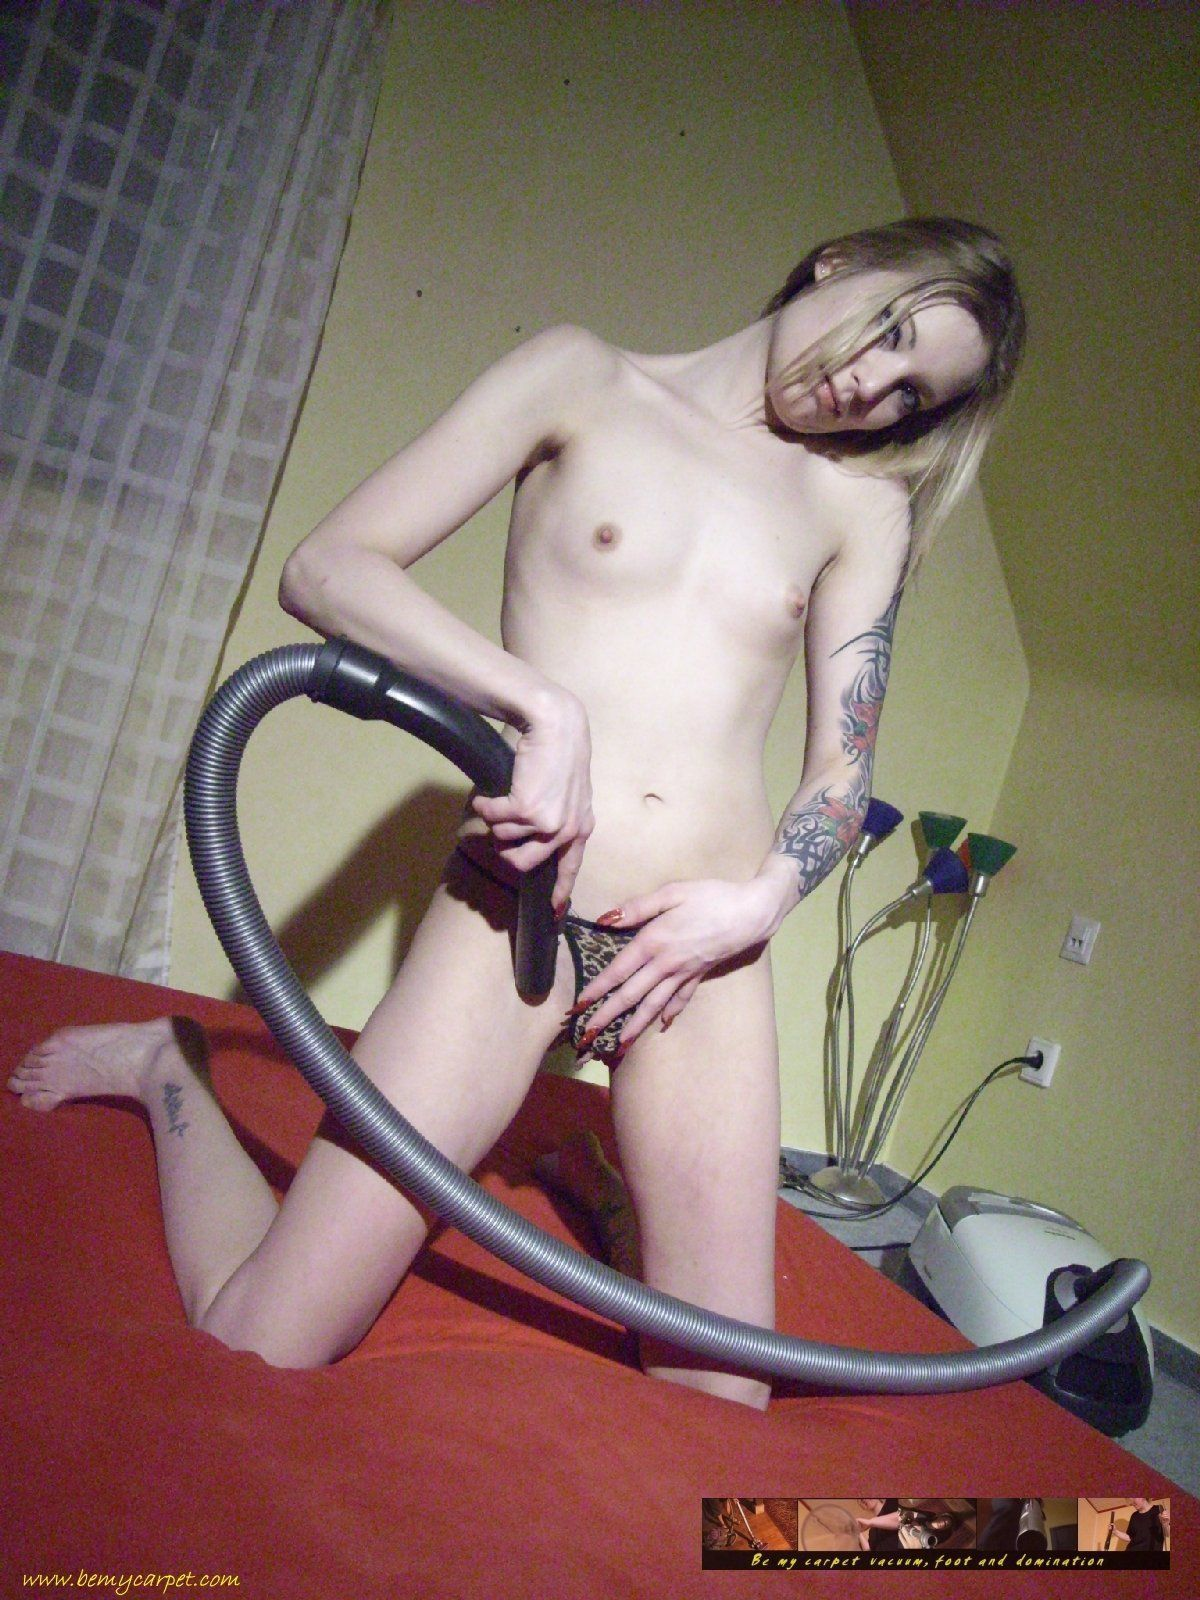 Matchpoint reccomend Vacuum cleaner blow job